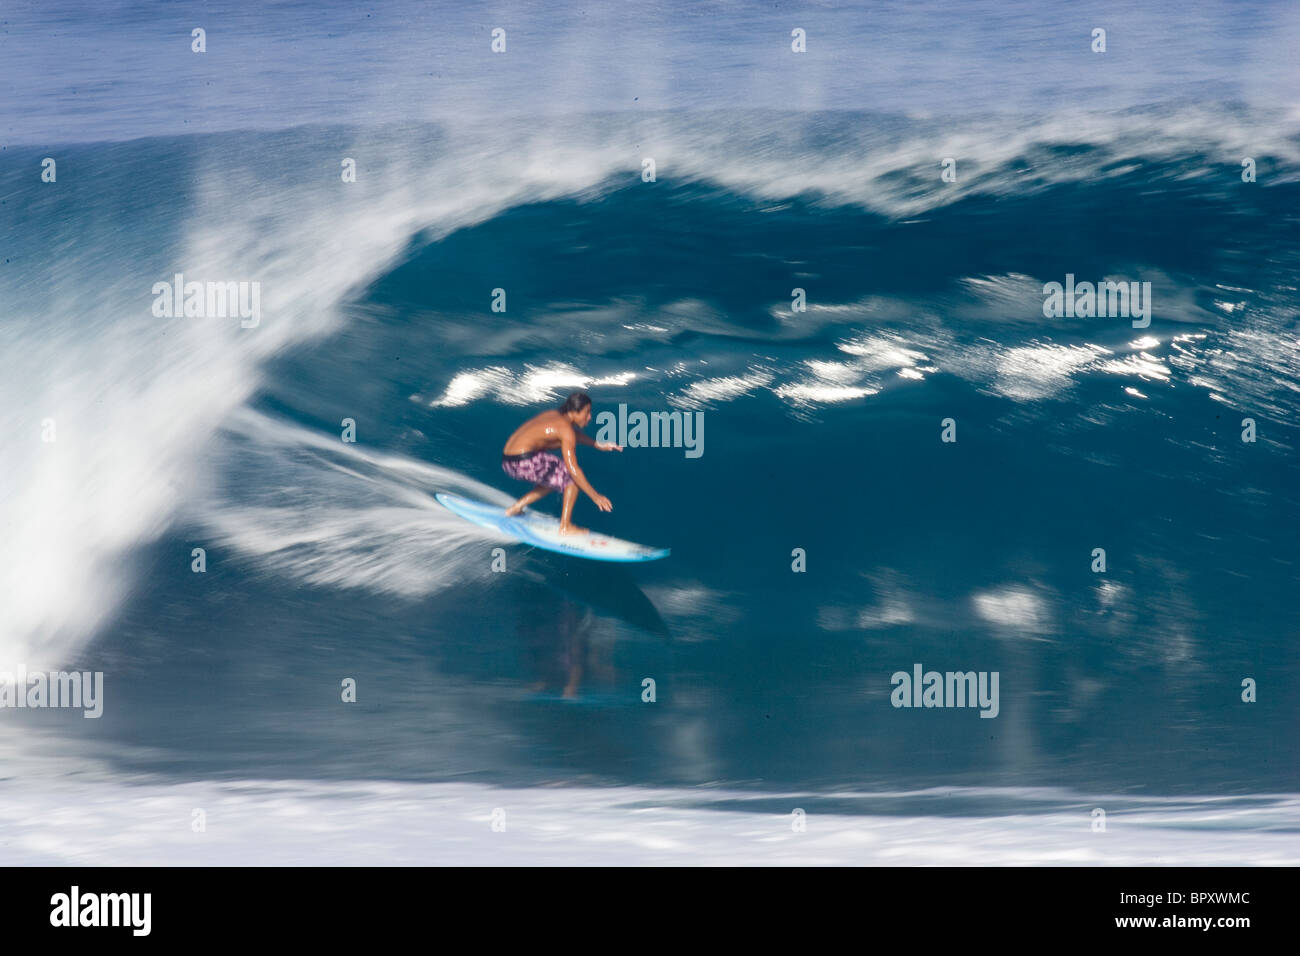 Surfing Pipeline In Hawaii Stock Photo 31323724 Alamy